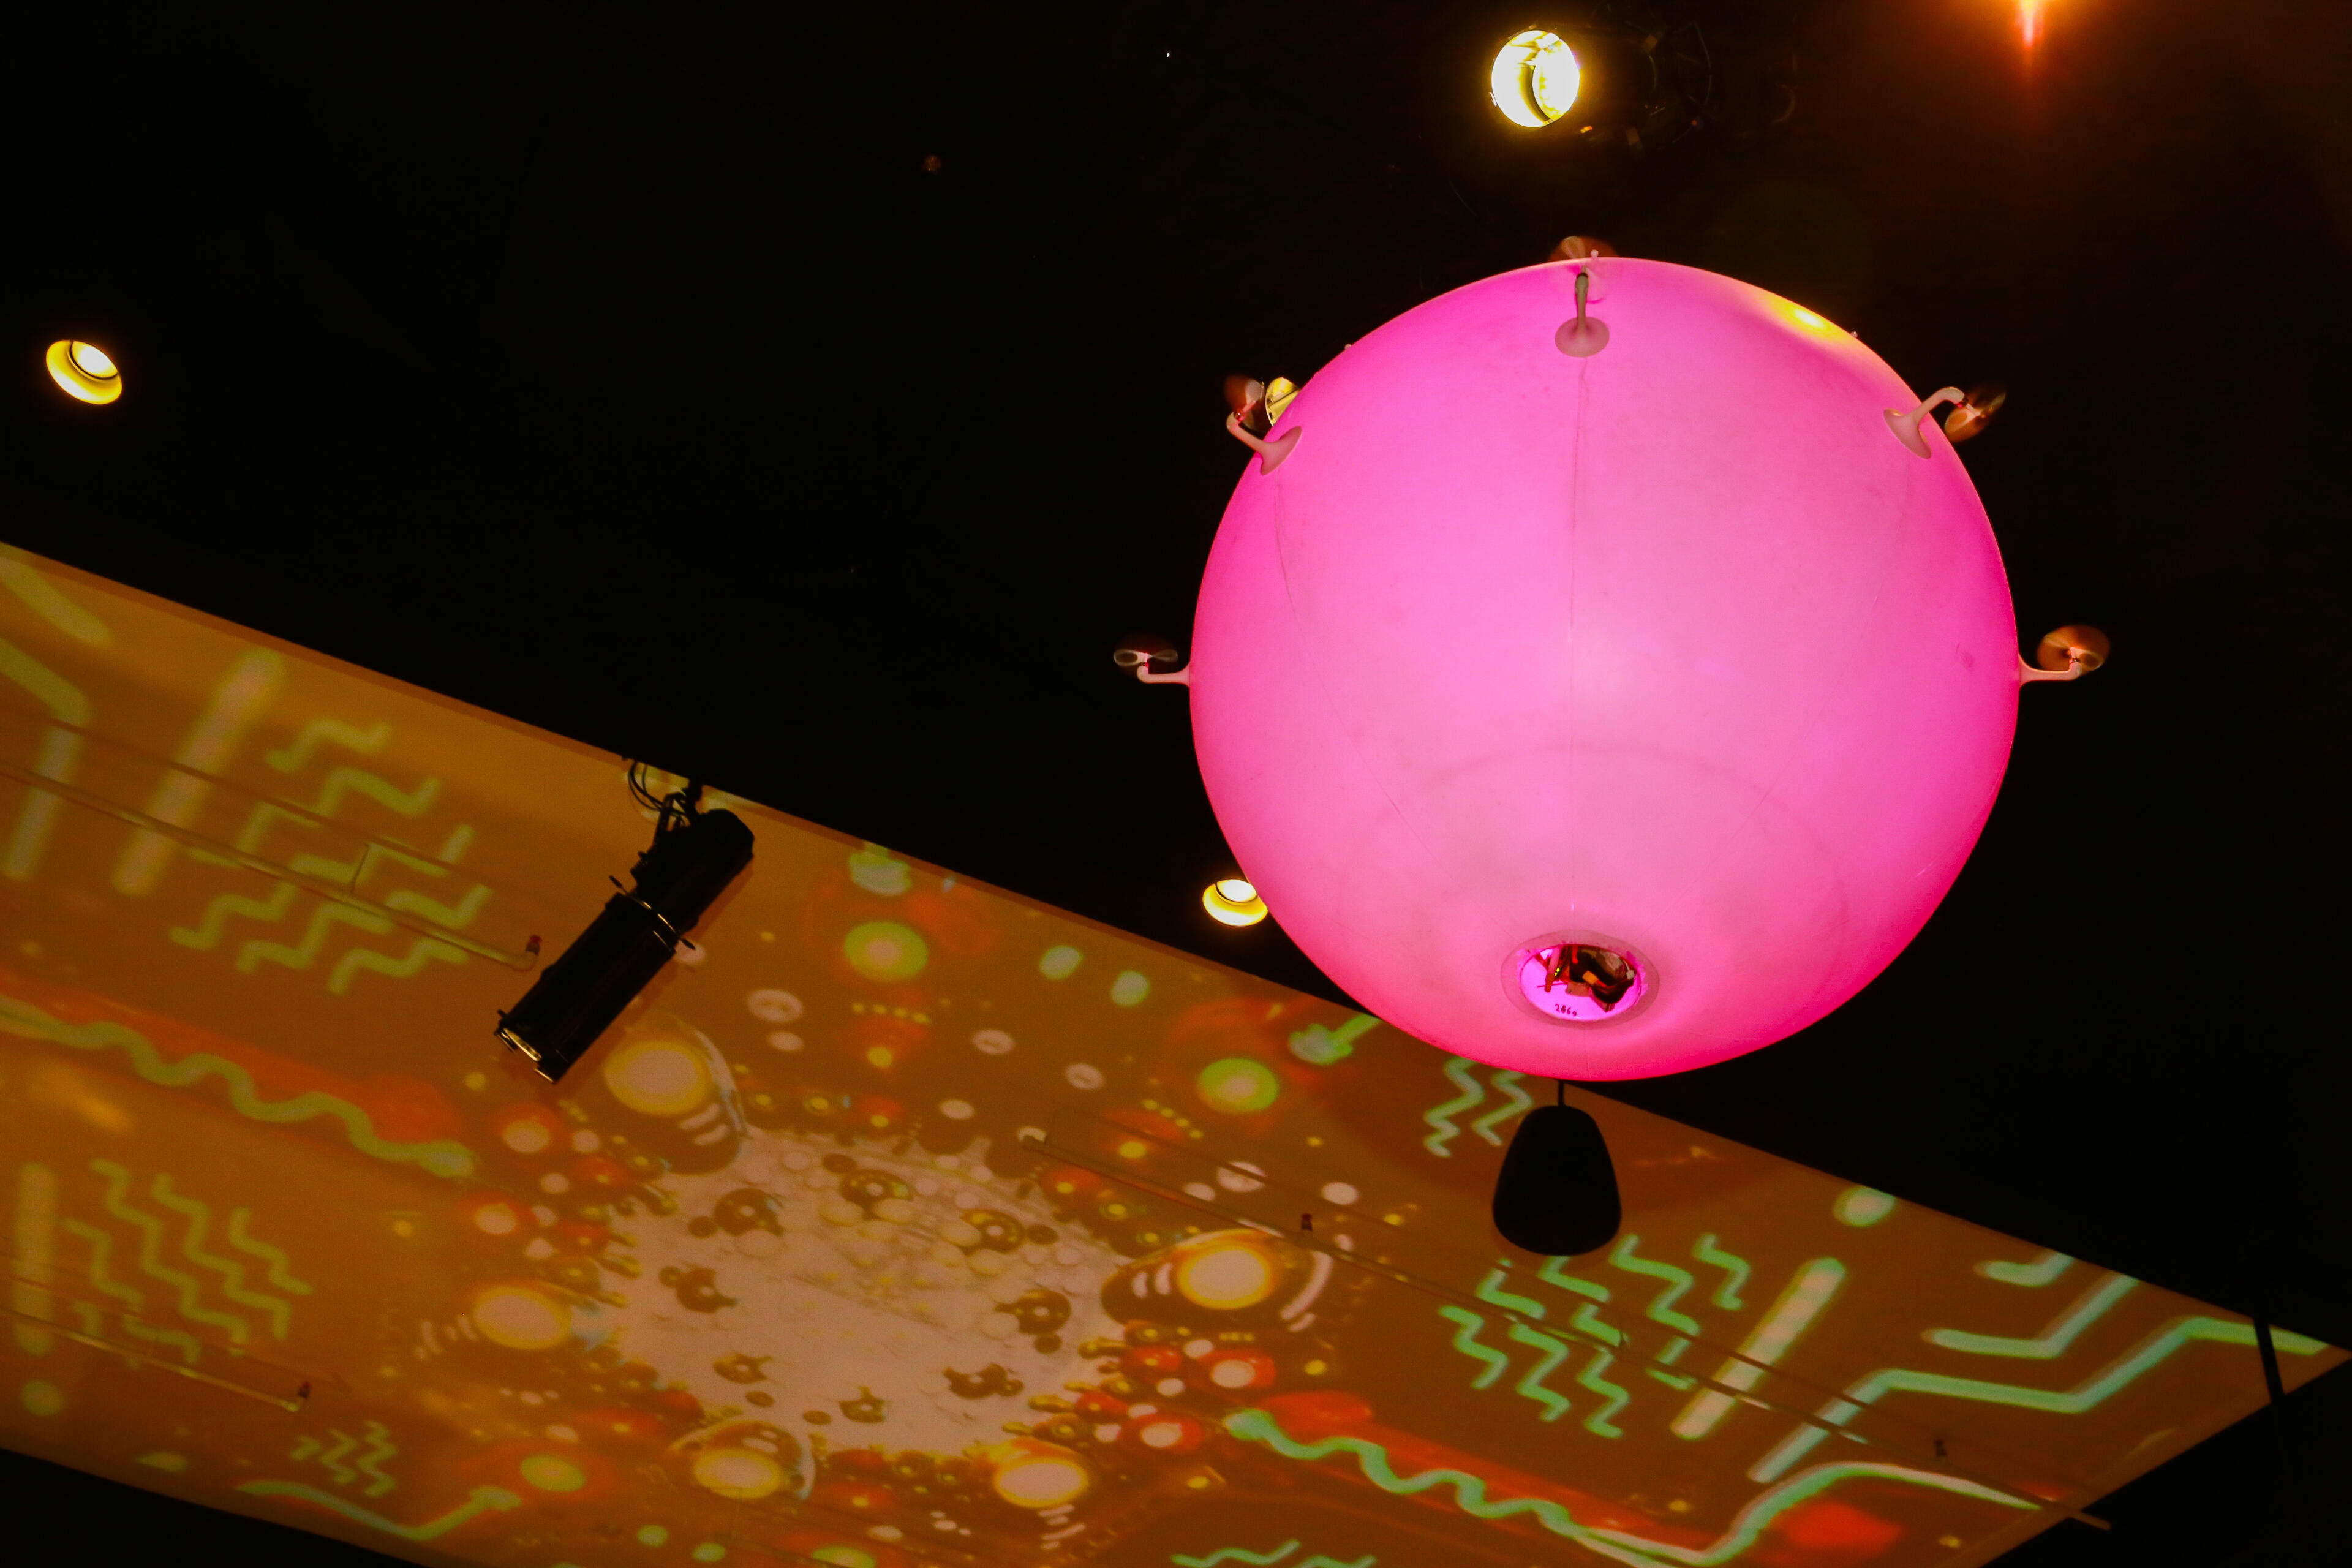 These drone-balloons light up and change color, and they're propelled by a set of tiny fans. They were custom created for Planet 13 by Airstage in Germany.